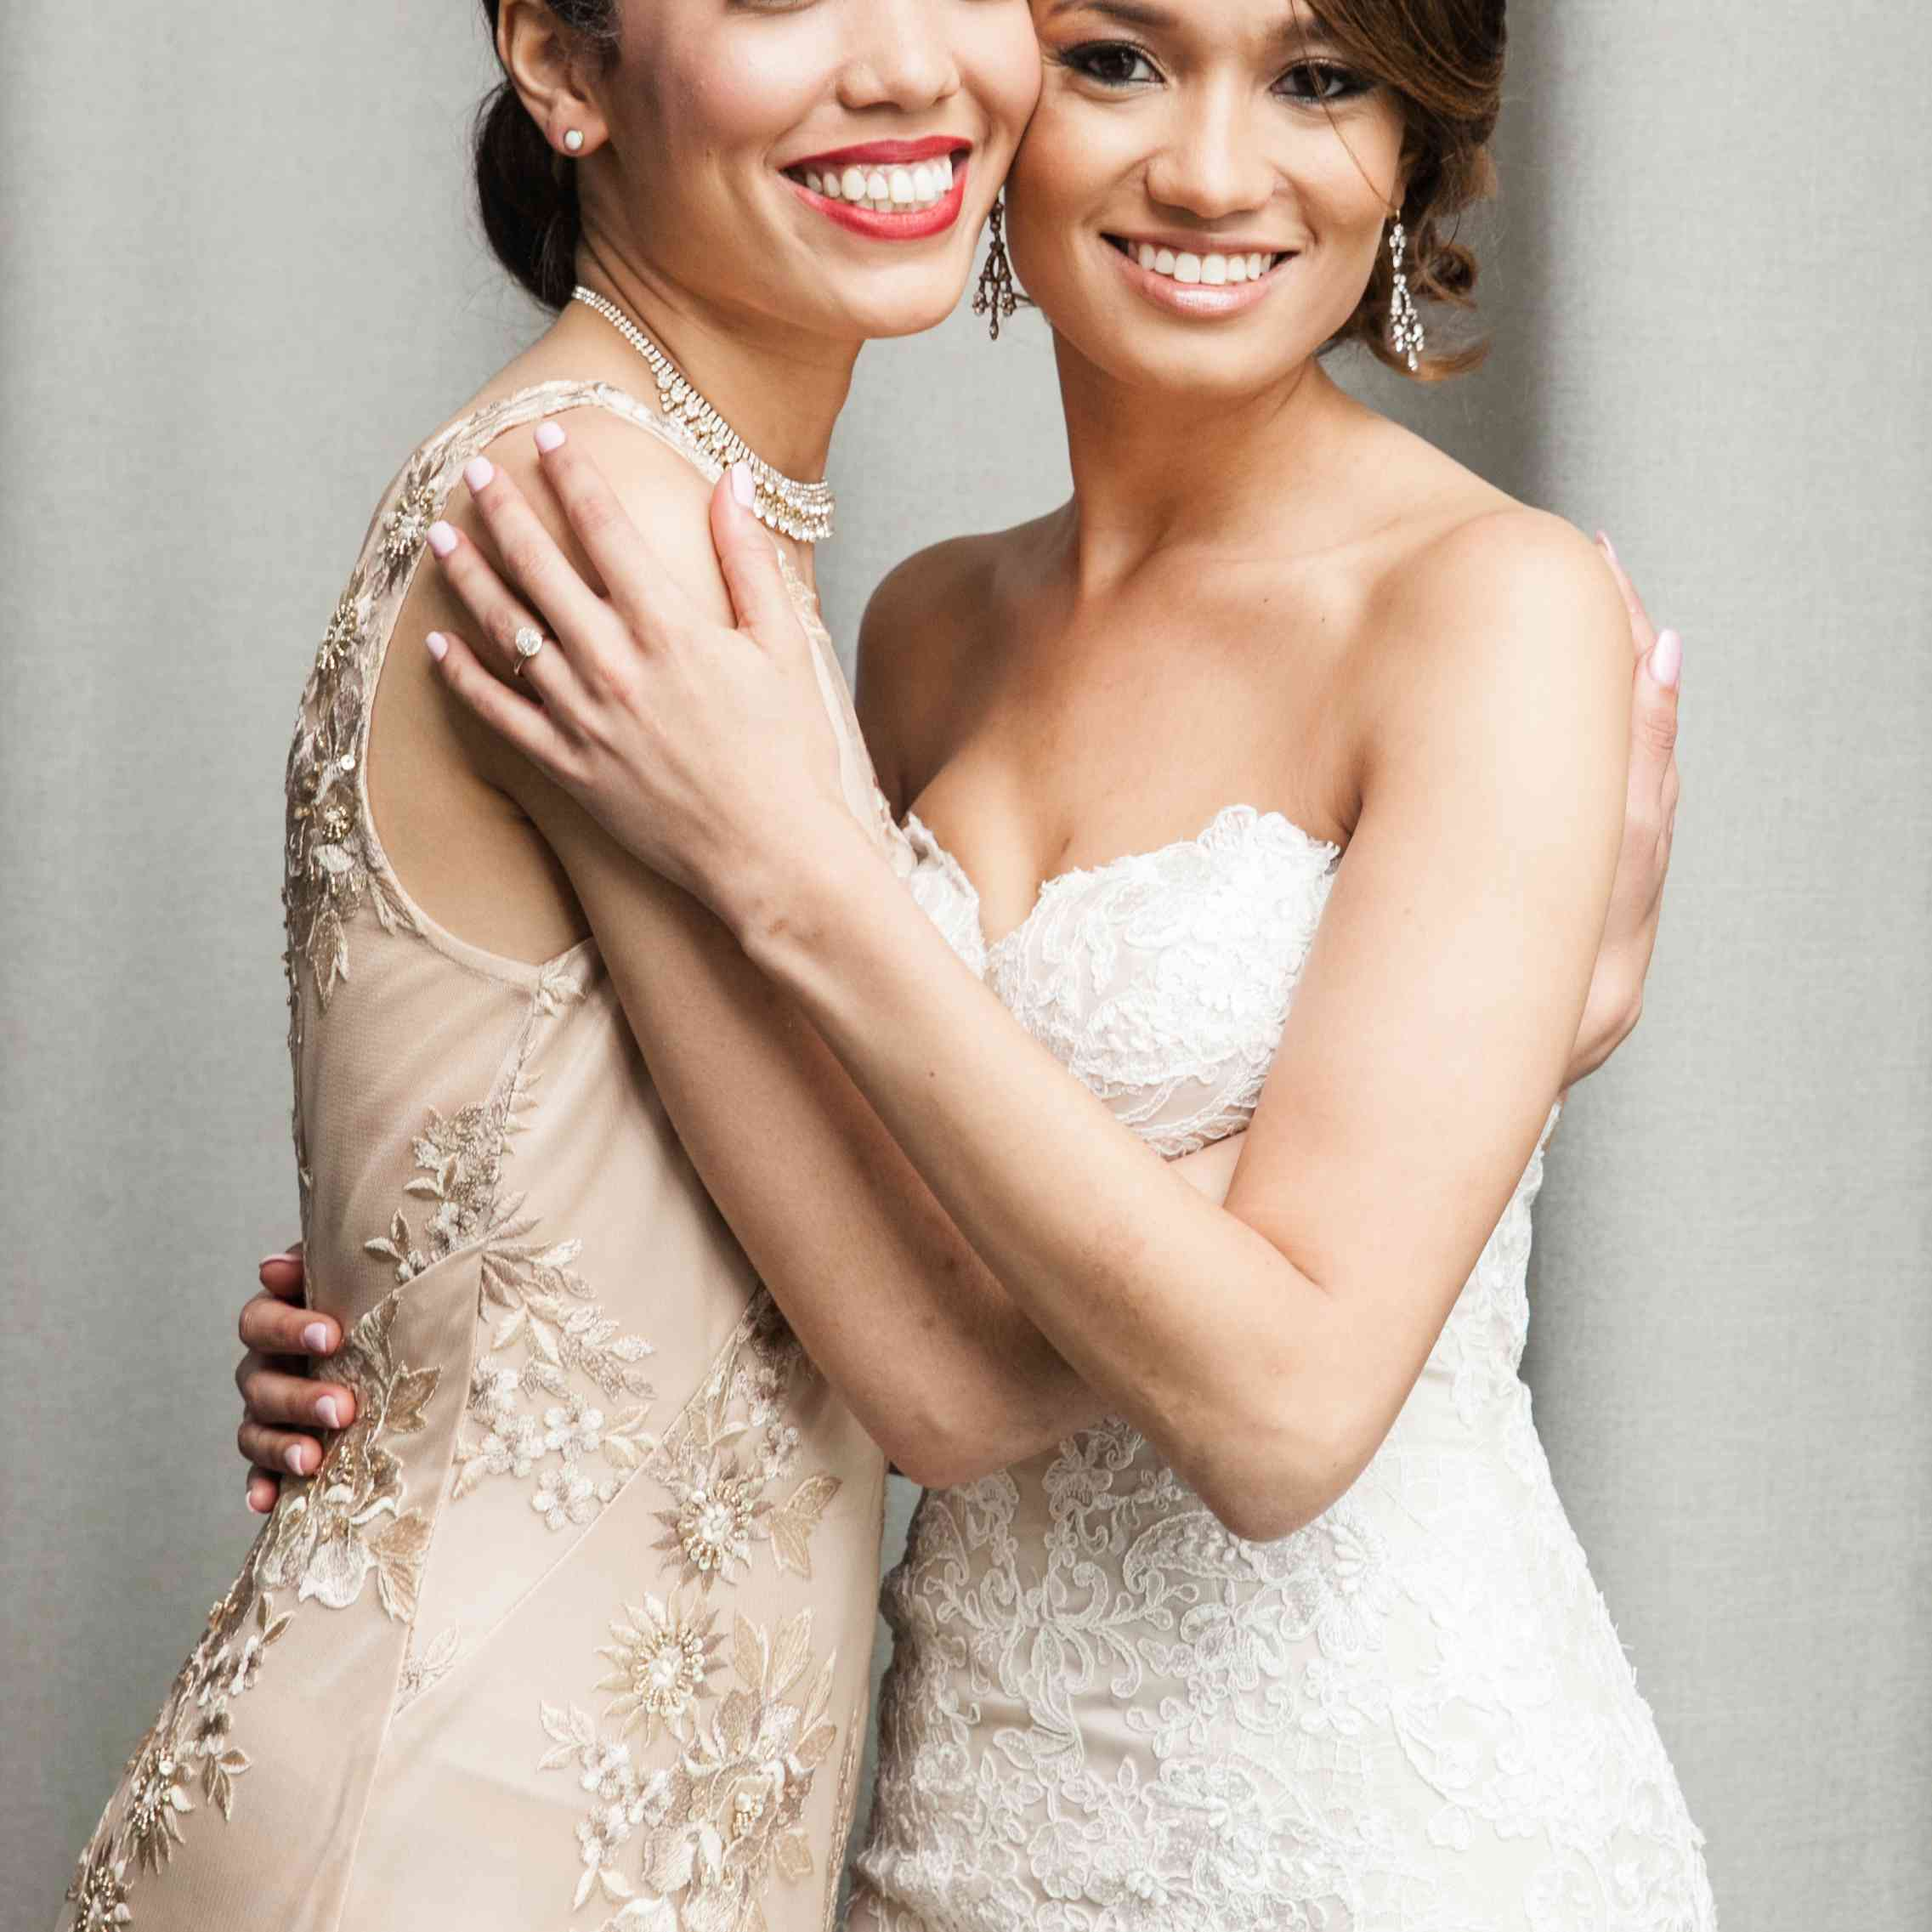 <p>Bride with Maid of Honor</p><br><br>